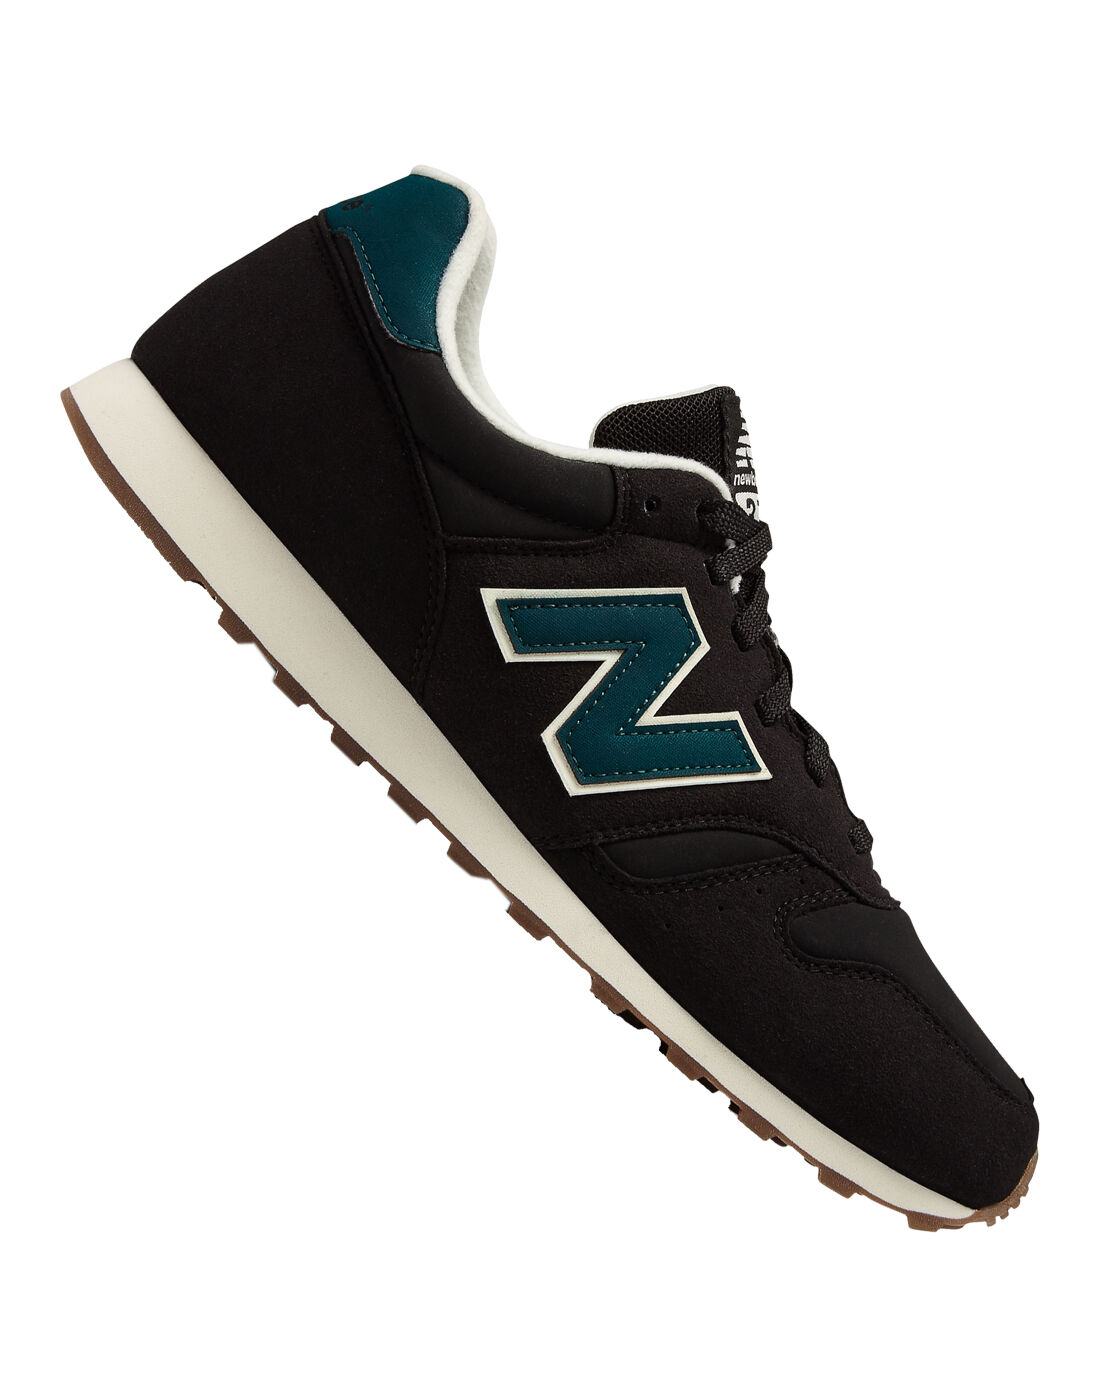 New Balance Mens 373 Trainer - Black | Life Style Sports IE